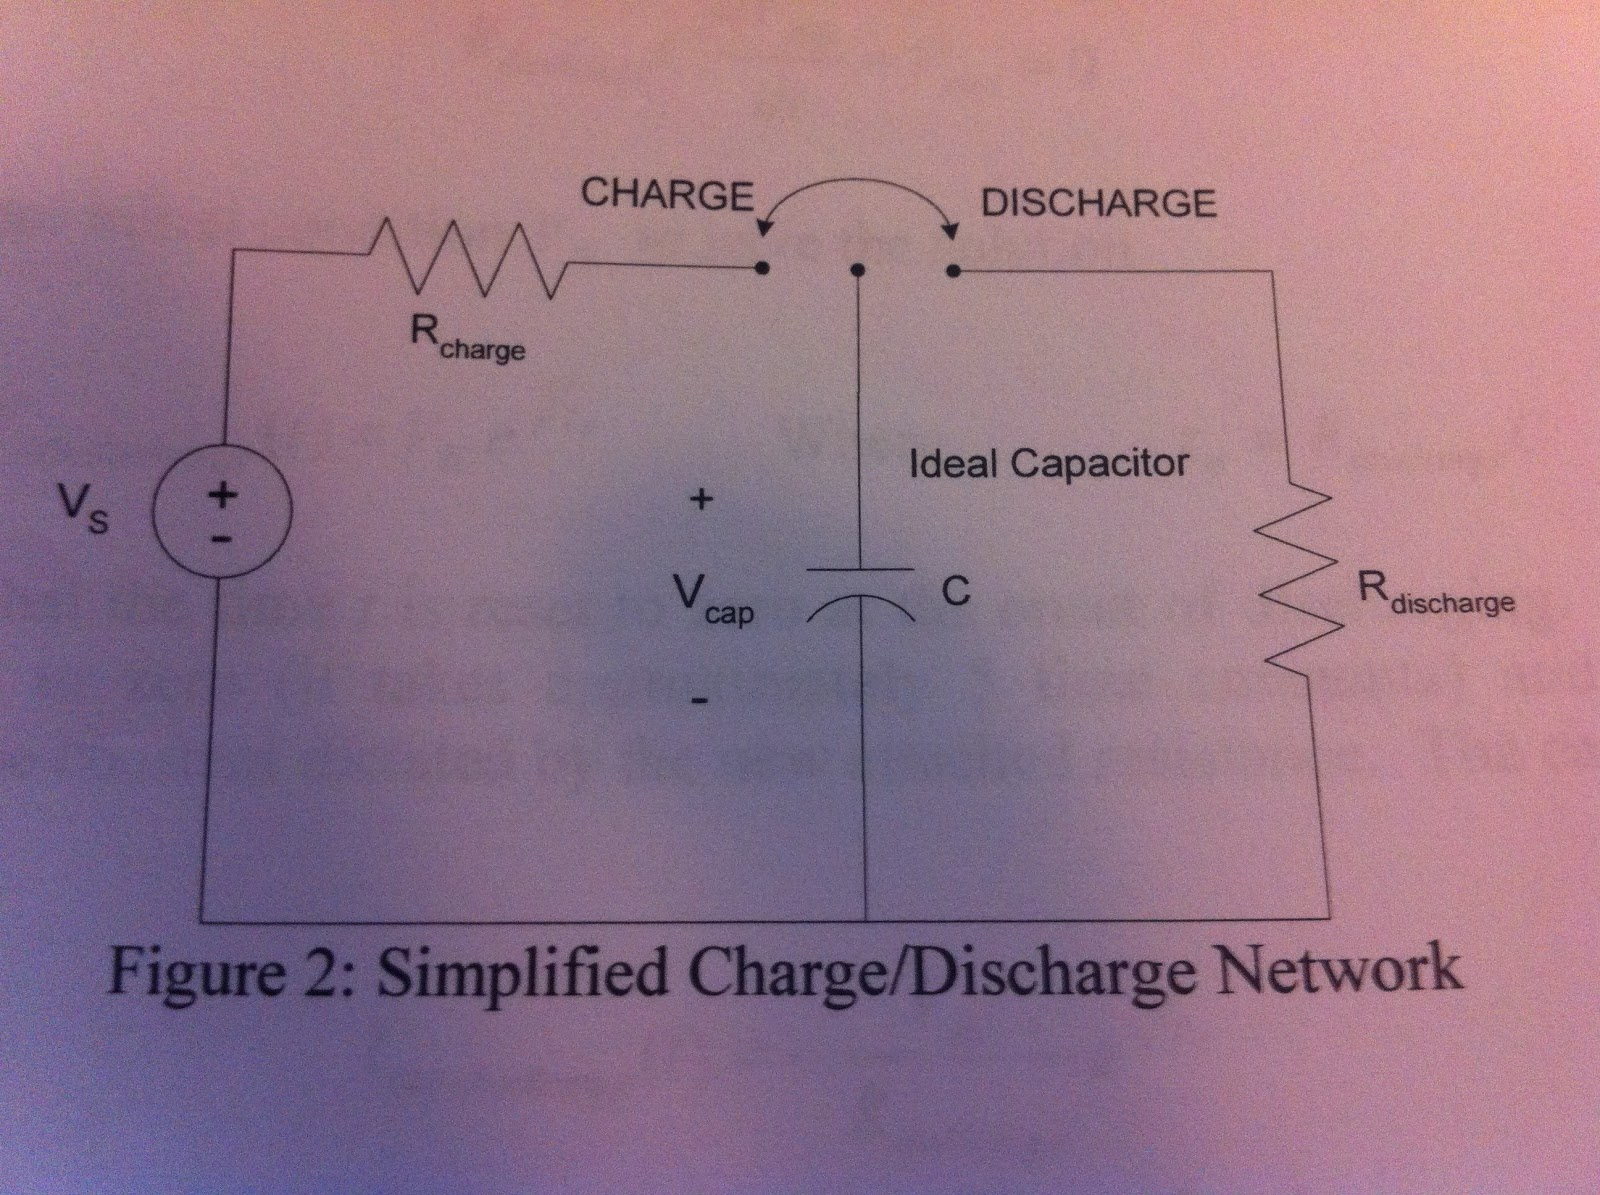 Engr 44 Ywang Capacitor Charging Discharging Capacitance And Of A In The Discharge Position Energy Is Absorbed By Resistance Rdischarge Either Case Crcharge Rdischage Control Rate At Which